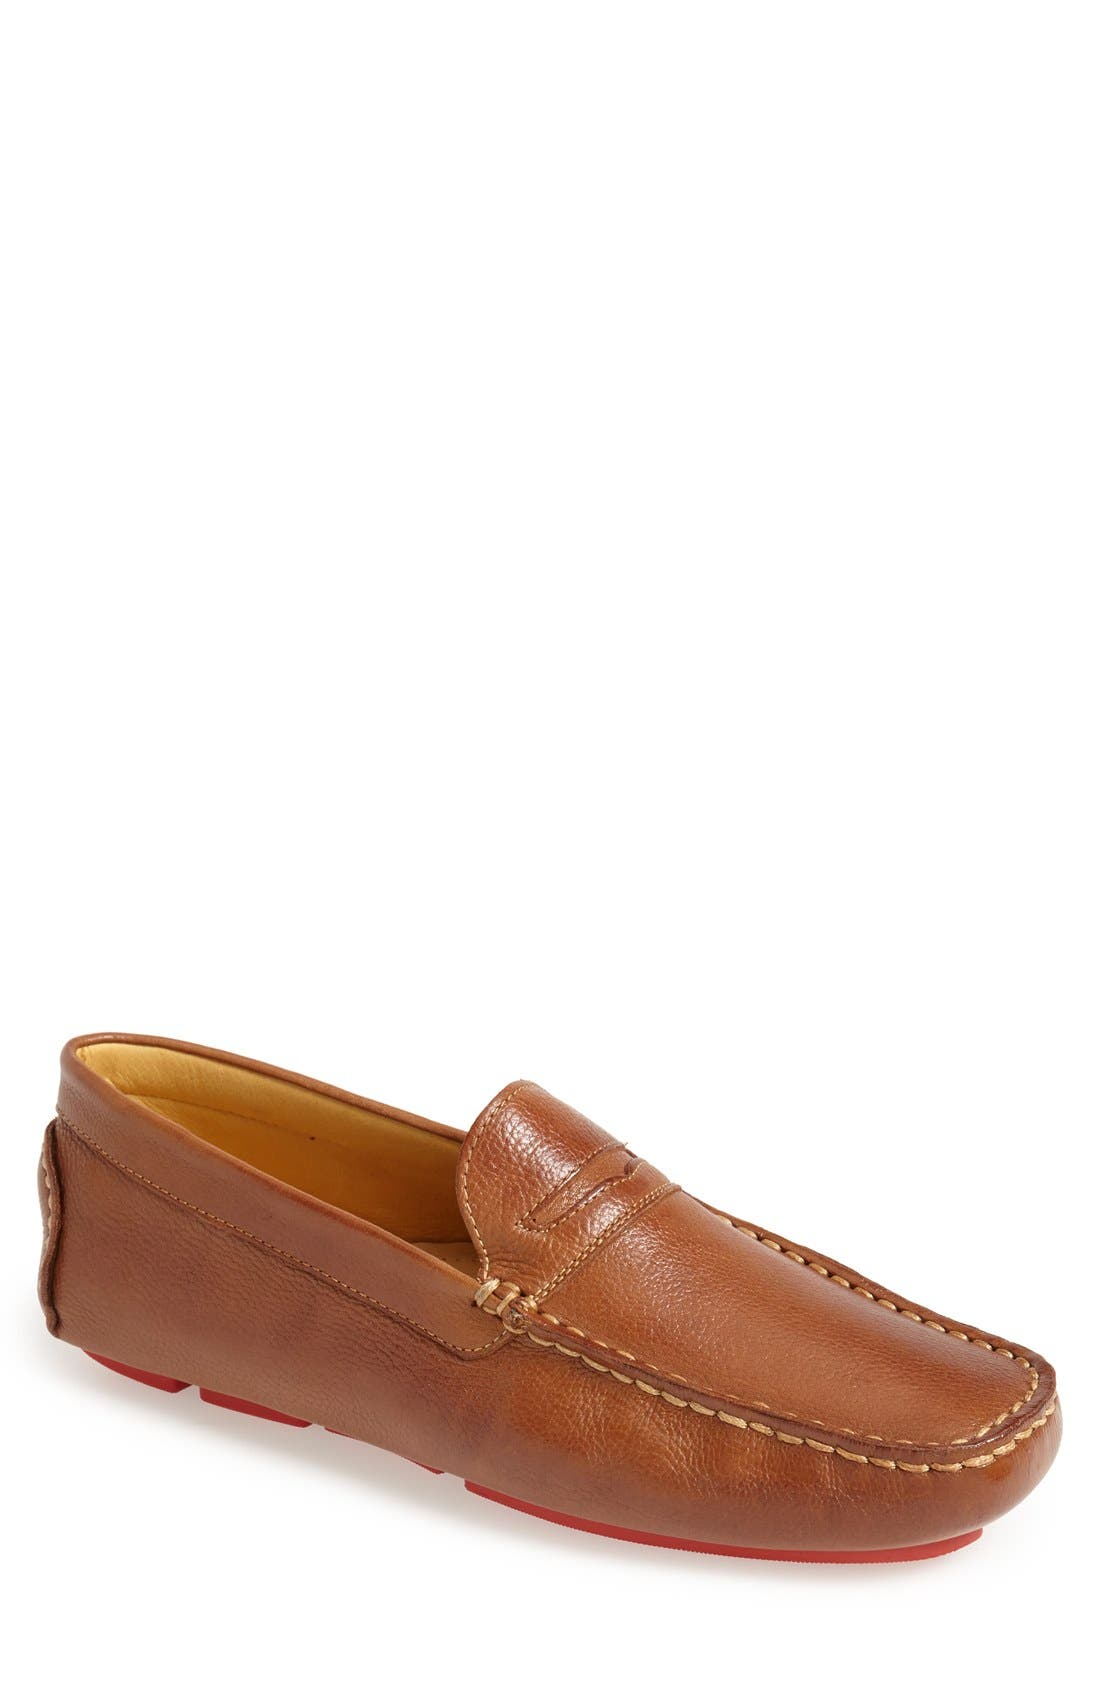 'Santee' Driving Shoe,                             Main thumbnail 1, color,                             COGNAC